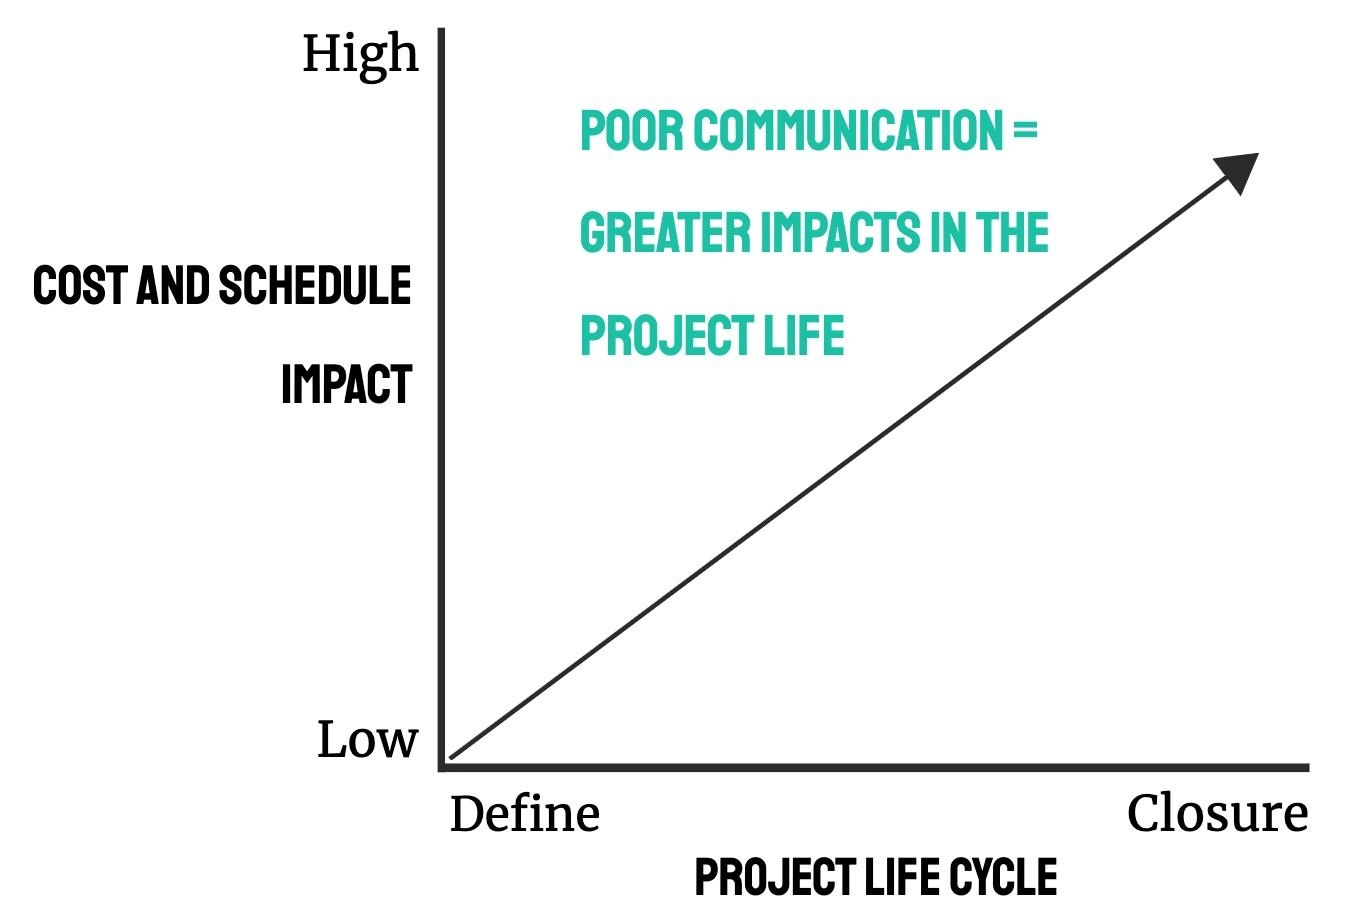 The price of poor communication - Cost and Schedule vs Project Life Cycle - Linear Graph.